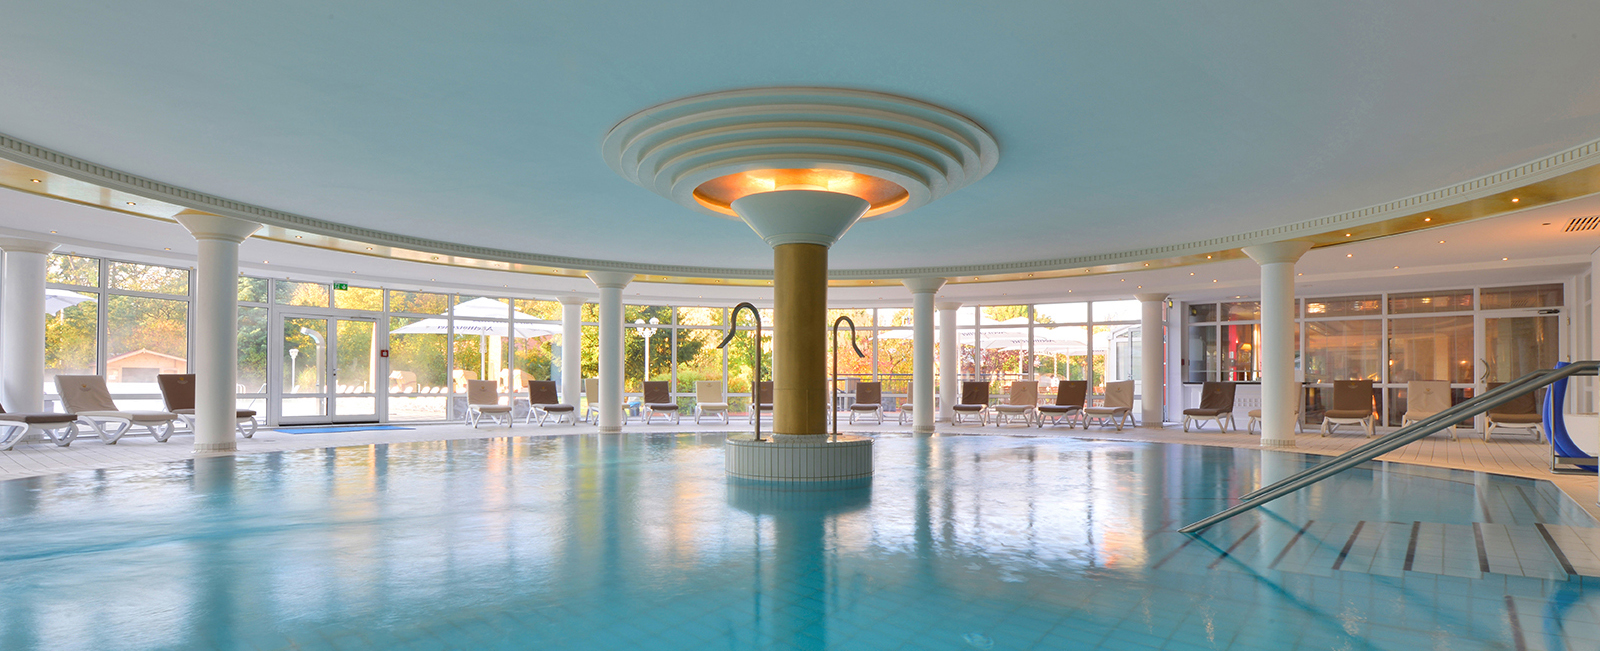 Großzügiges Wellnessangebot mit großem Pool im The Monarch Hotel Bad Gögging